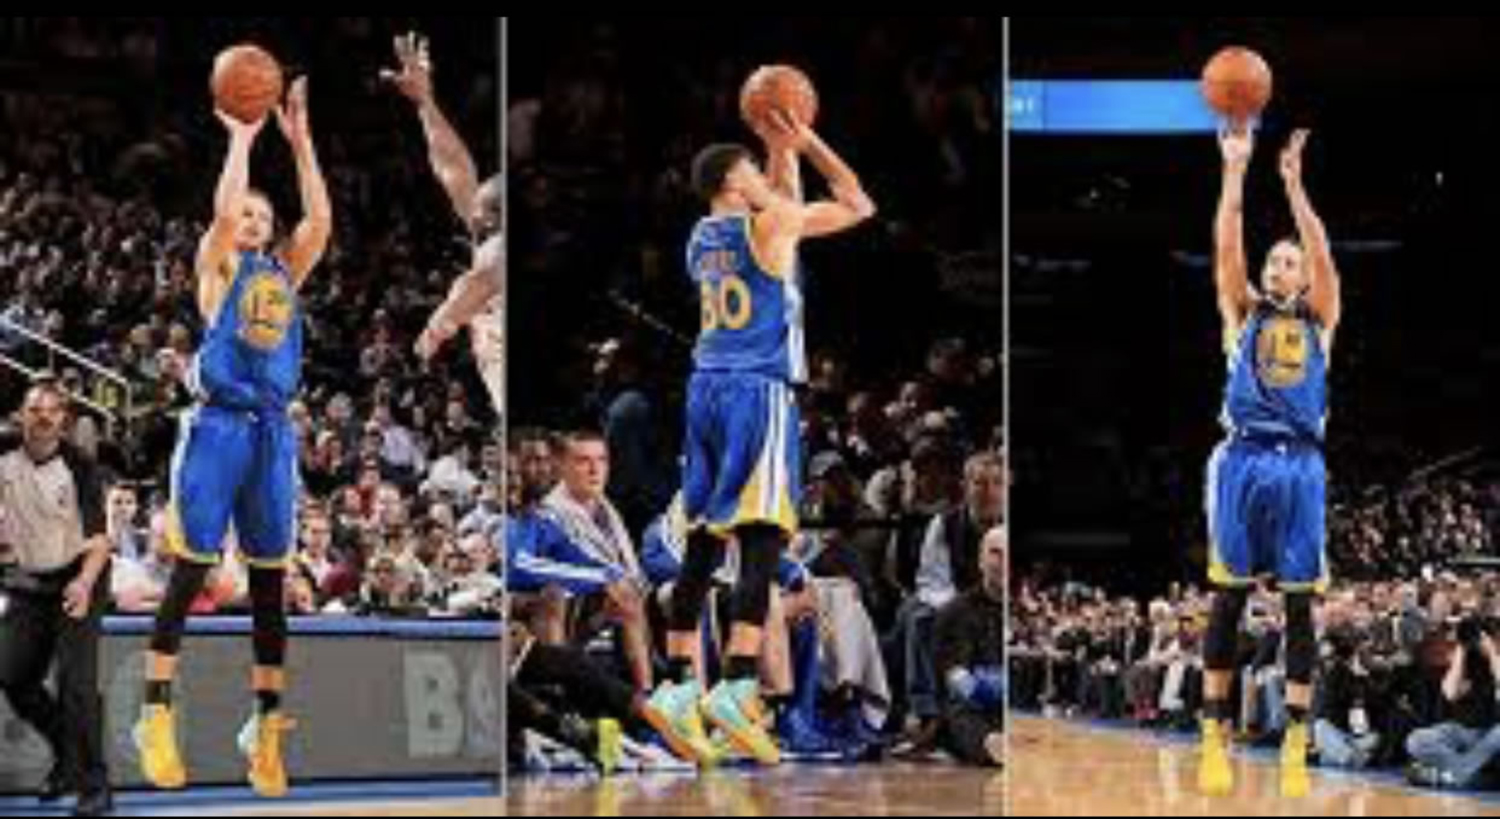 Steph Curry shoots threes for his Golden State Warriors team.